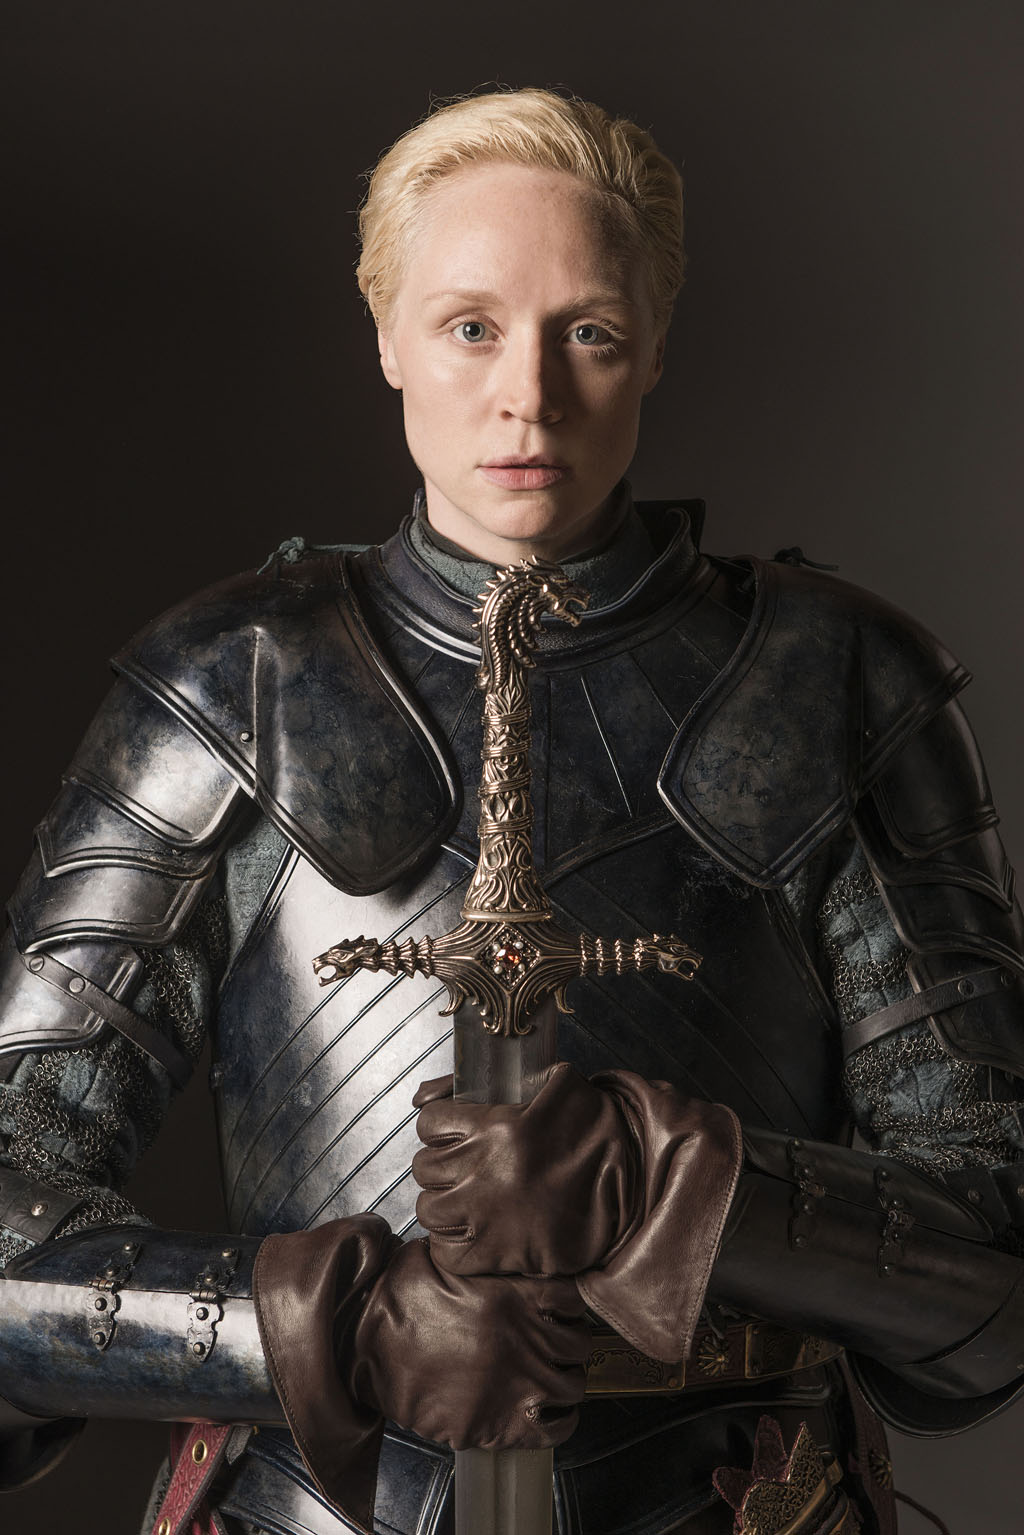 Gwendoline Christie Nude Pictures regarding principal game of thrones photographer helen sloan on difficult